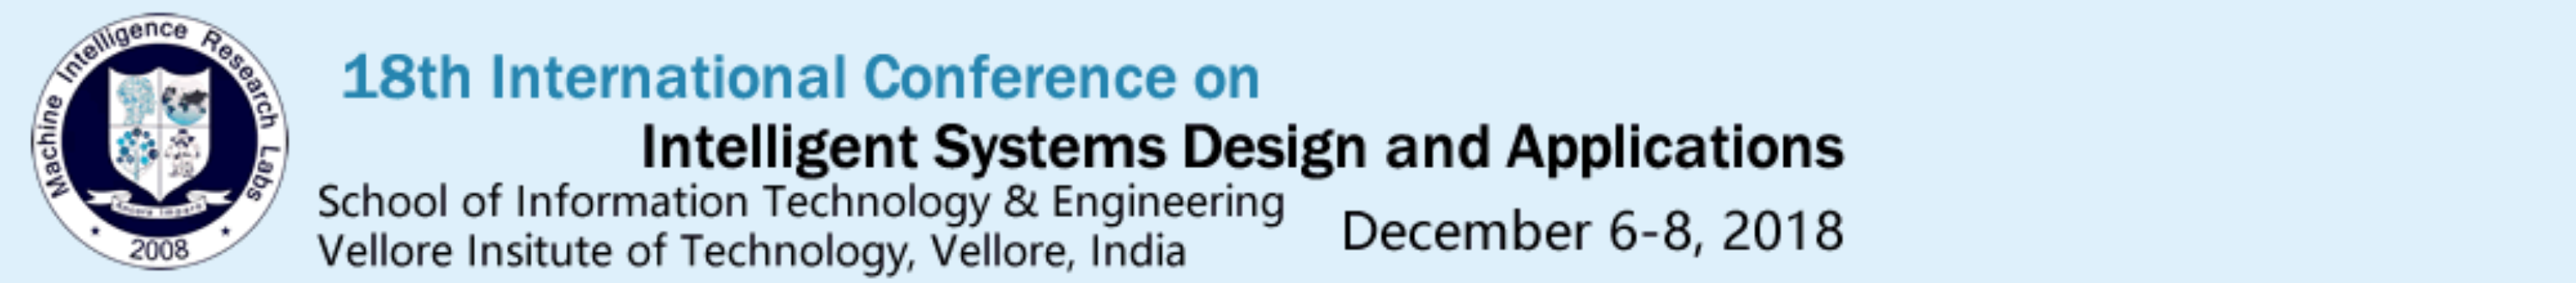 18th International Conference On Intelligent Systems Design And Applications Isda Tickets By Ashish Kumar Thursday December 06 2018 Vellore Event